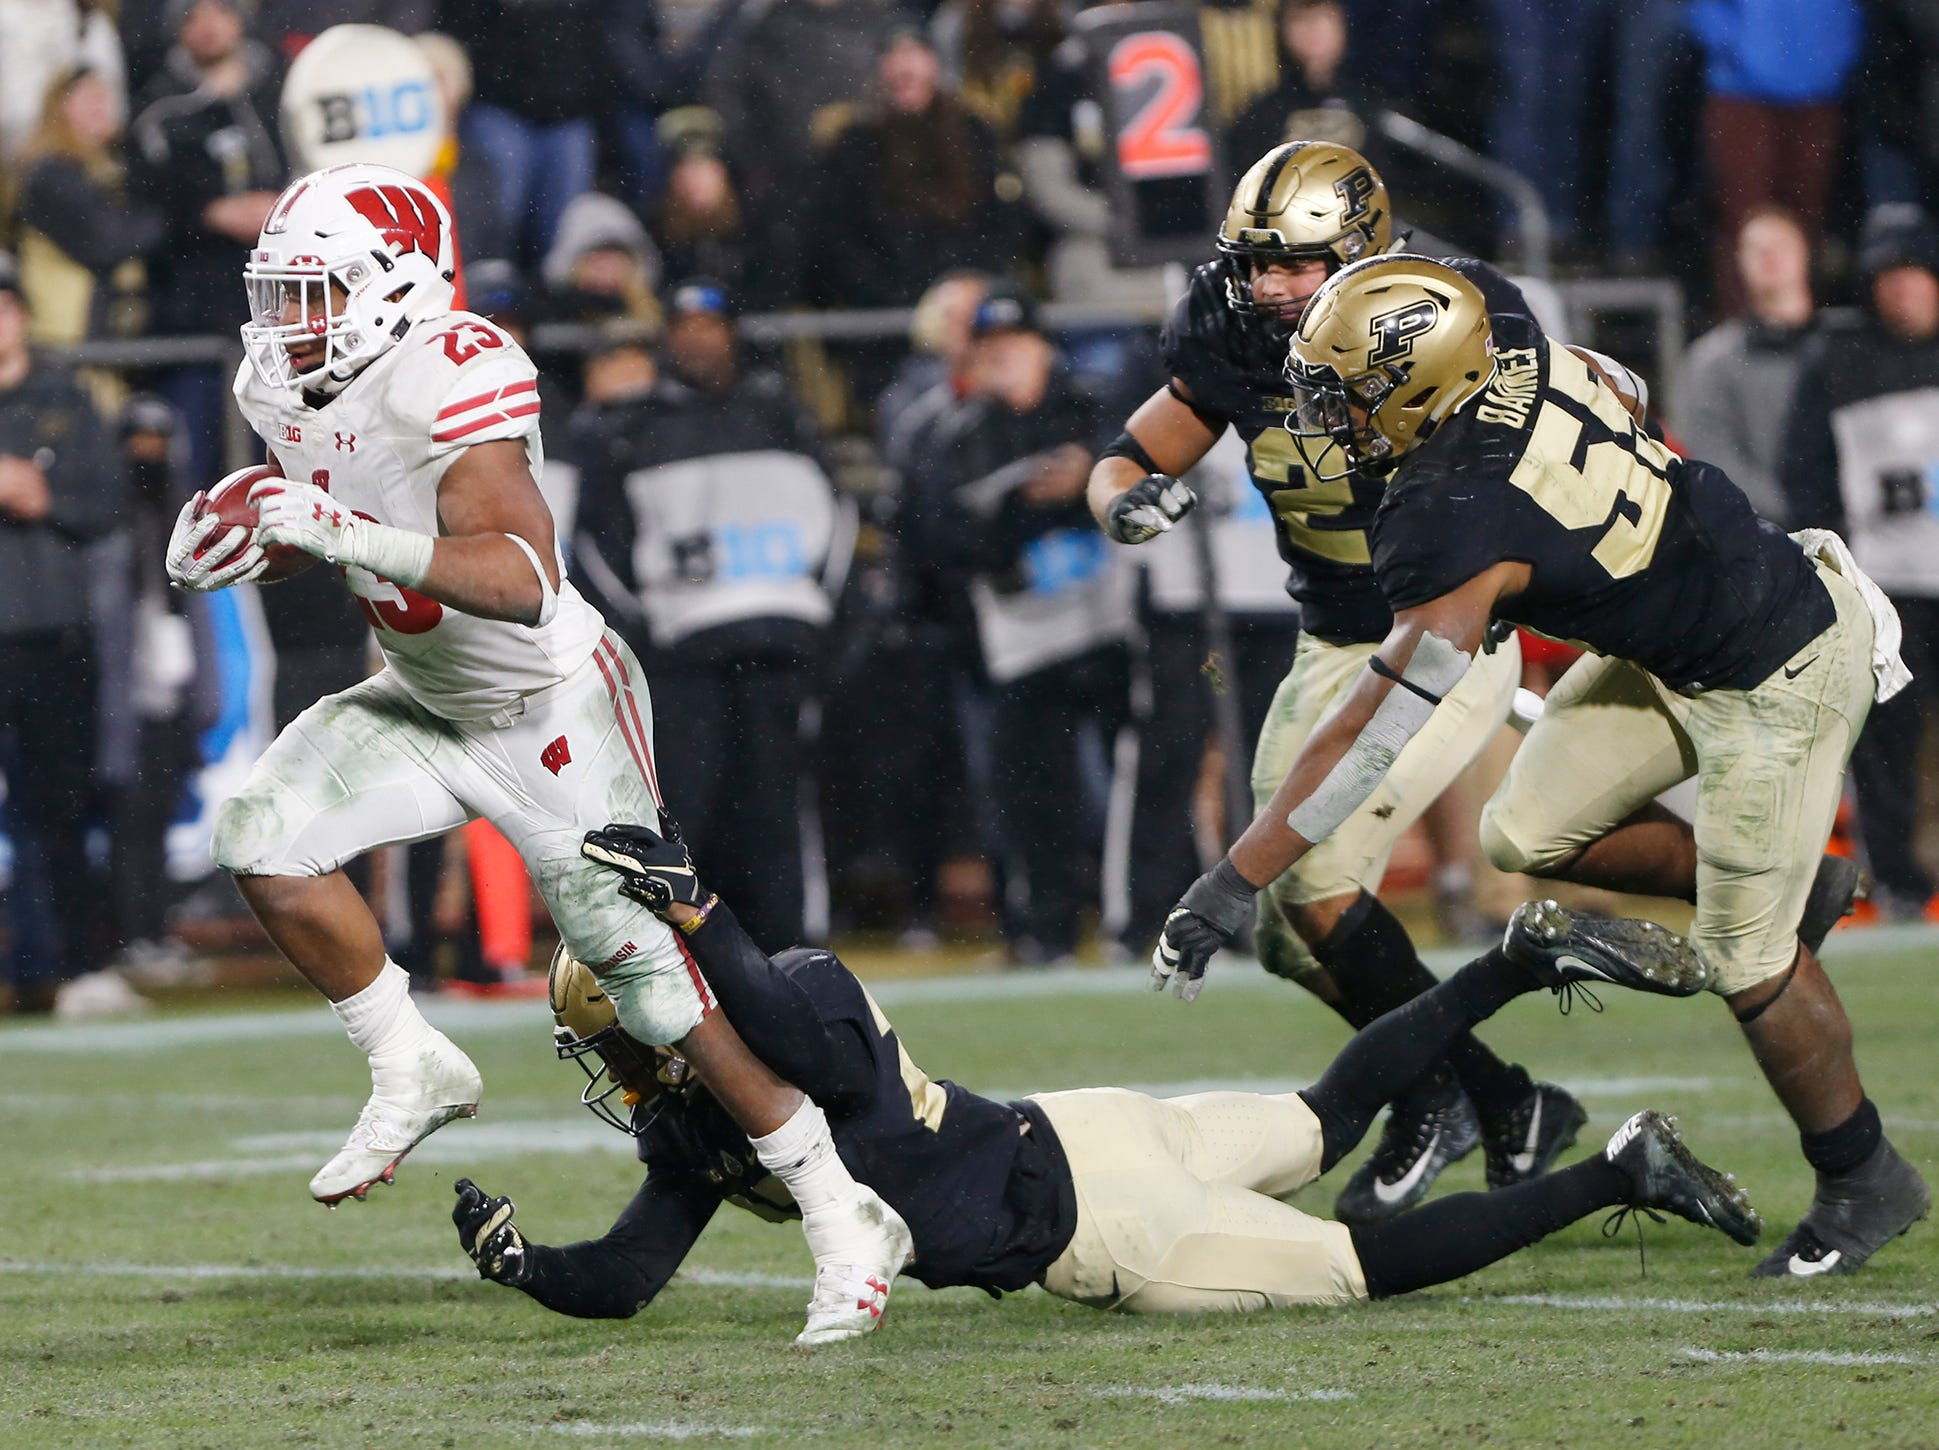 Jonathon Taylor of Wisconsin slips through the grasp of Navon Mosley of Purdue as he rushes for the winning touchdown in the third overtime period Saturday, November 17, 2018, at Ross-Ade Stadium. Purdue fell to Wisconsin 47-44 3OT.